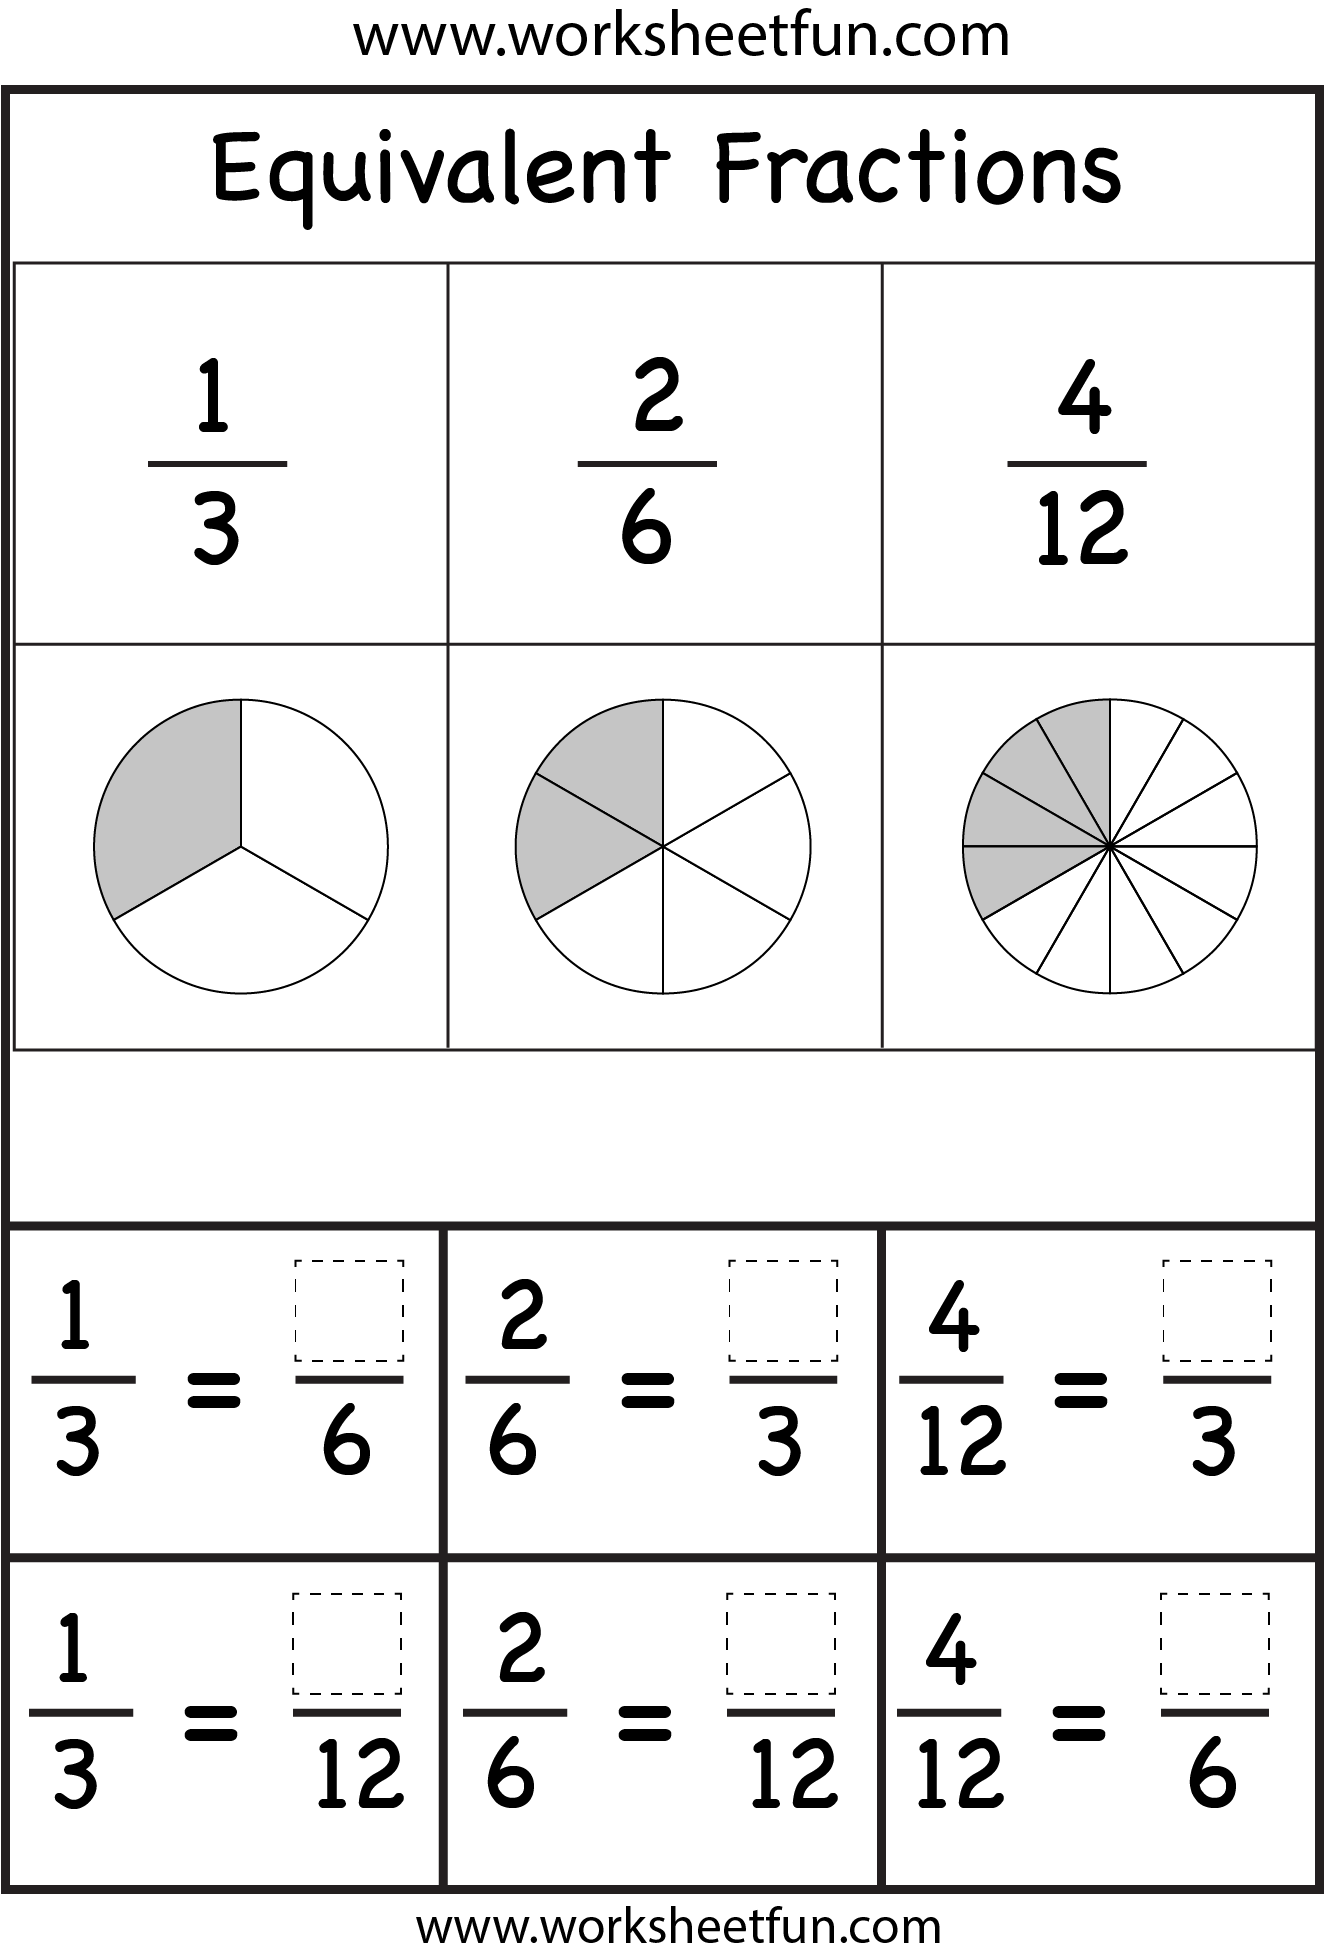 Equivalent Fractions Worksheets